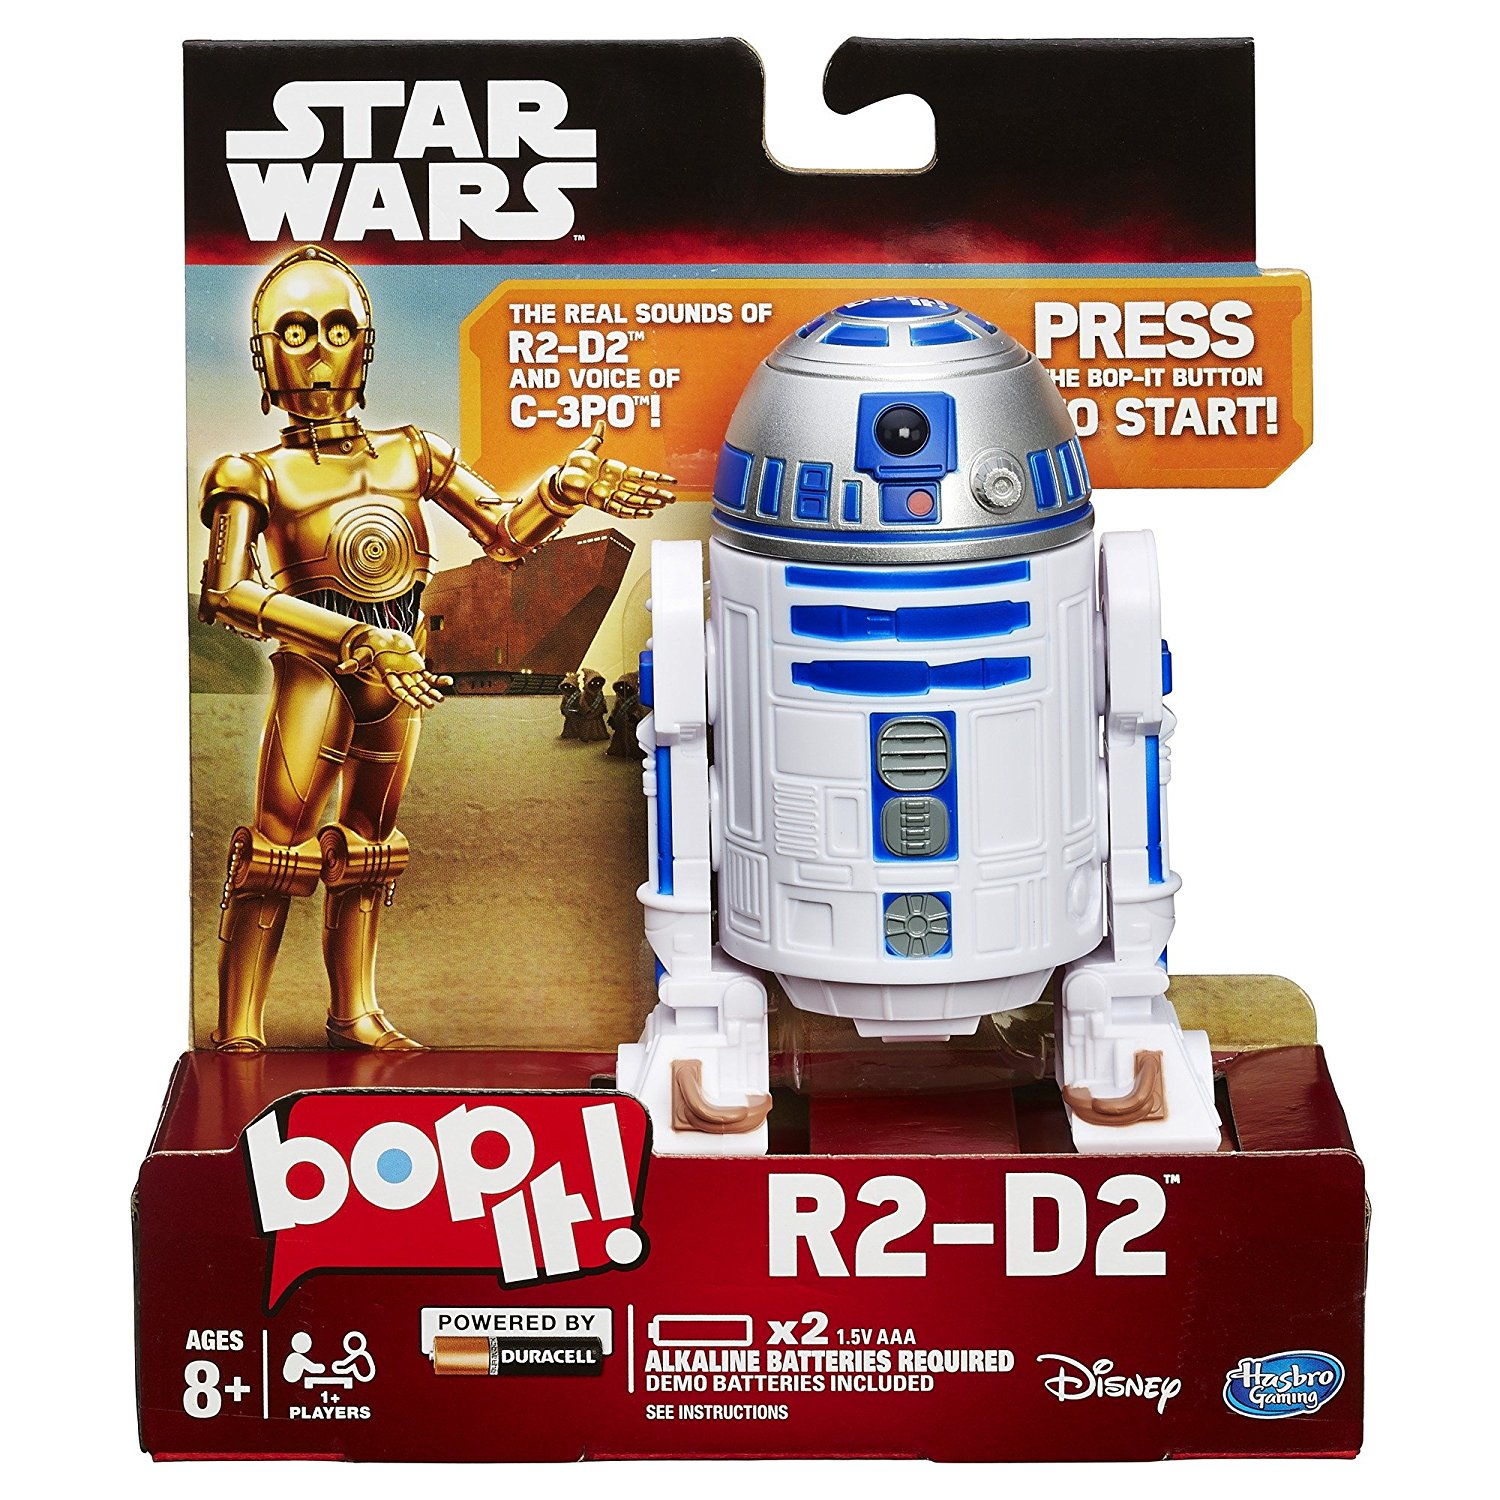 Star Wars Bop It R2-D2 Game, Electronic Star Wars version of the classic Bop It game By... by